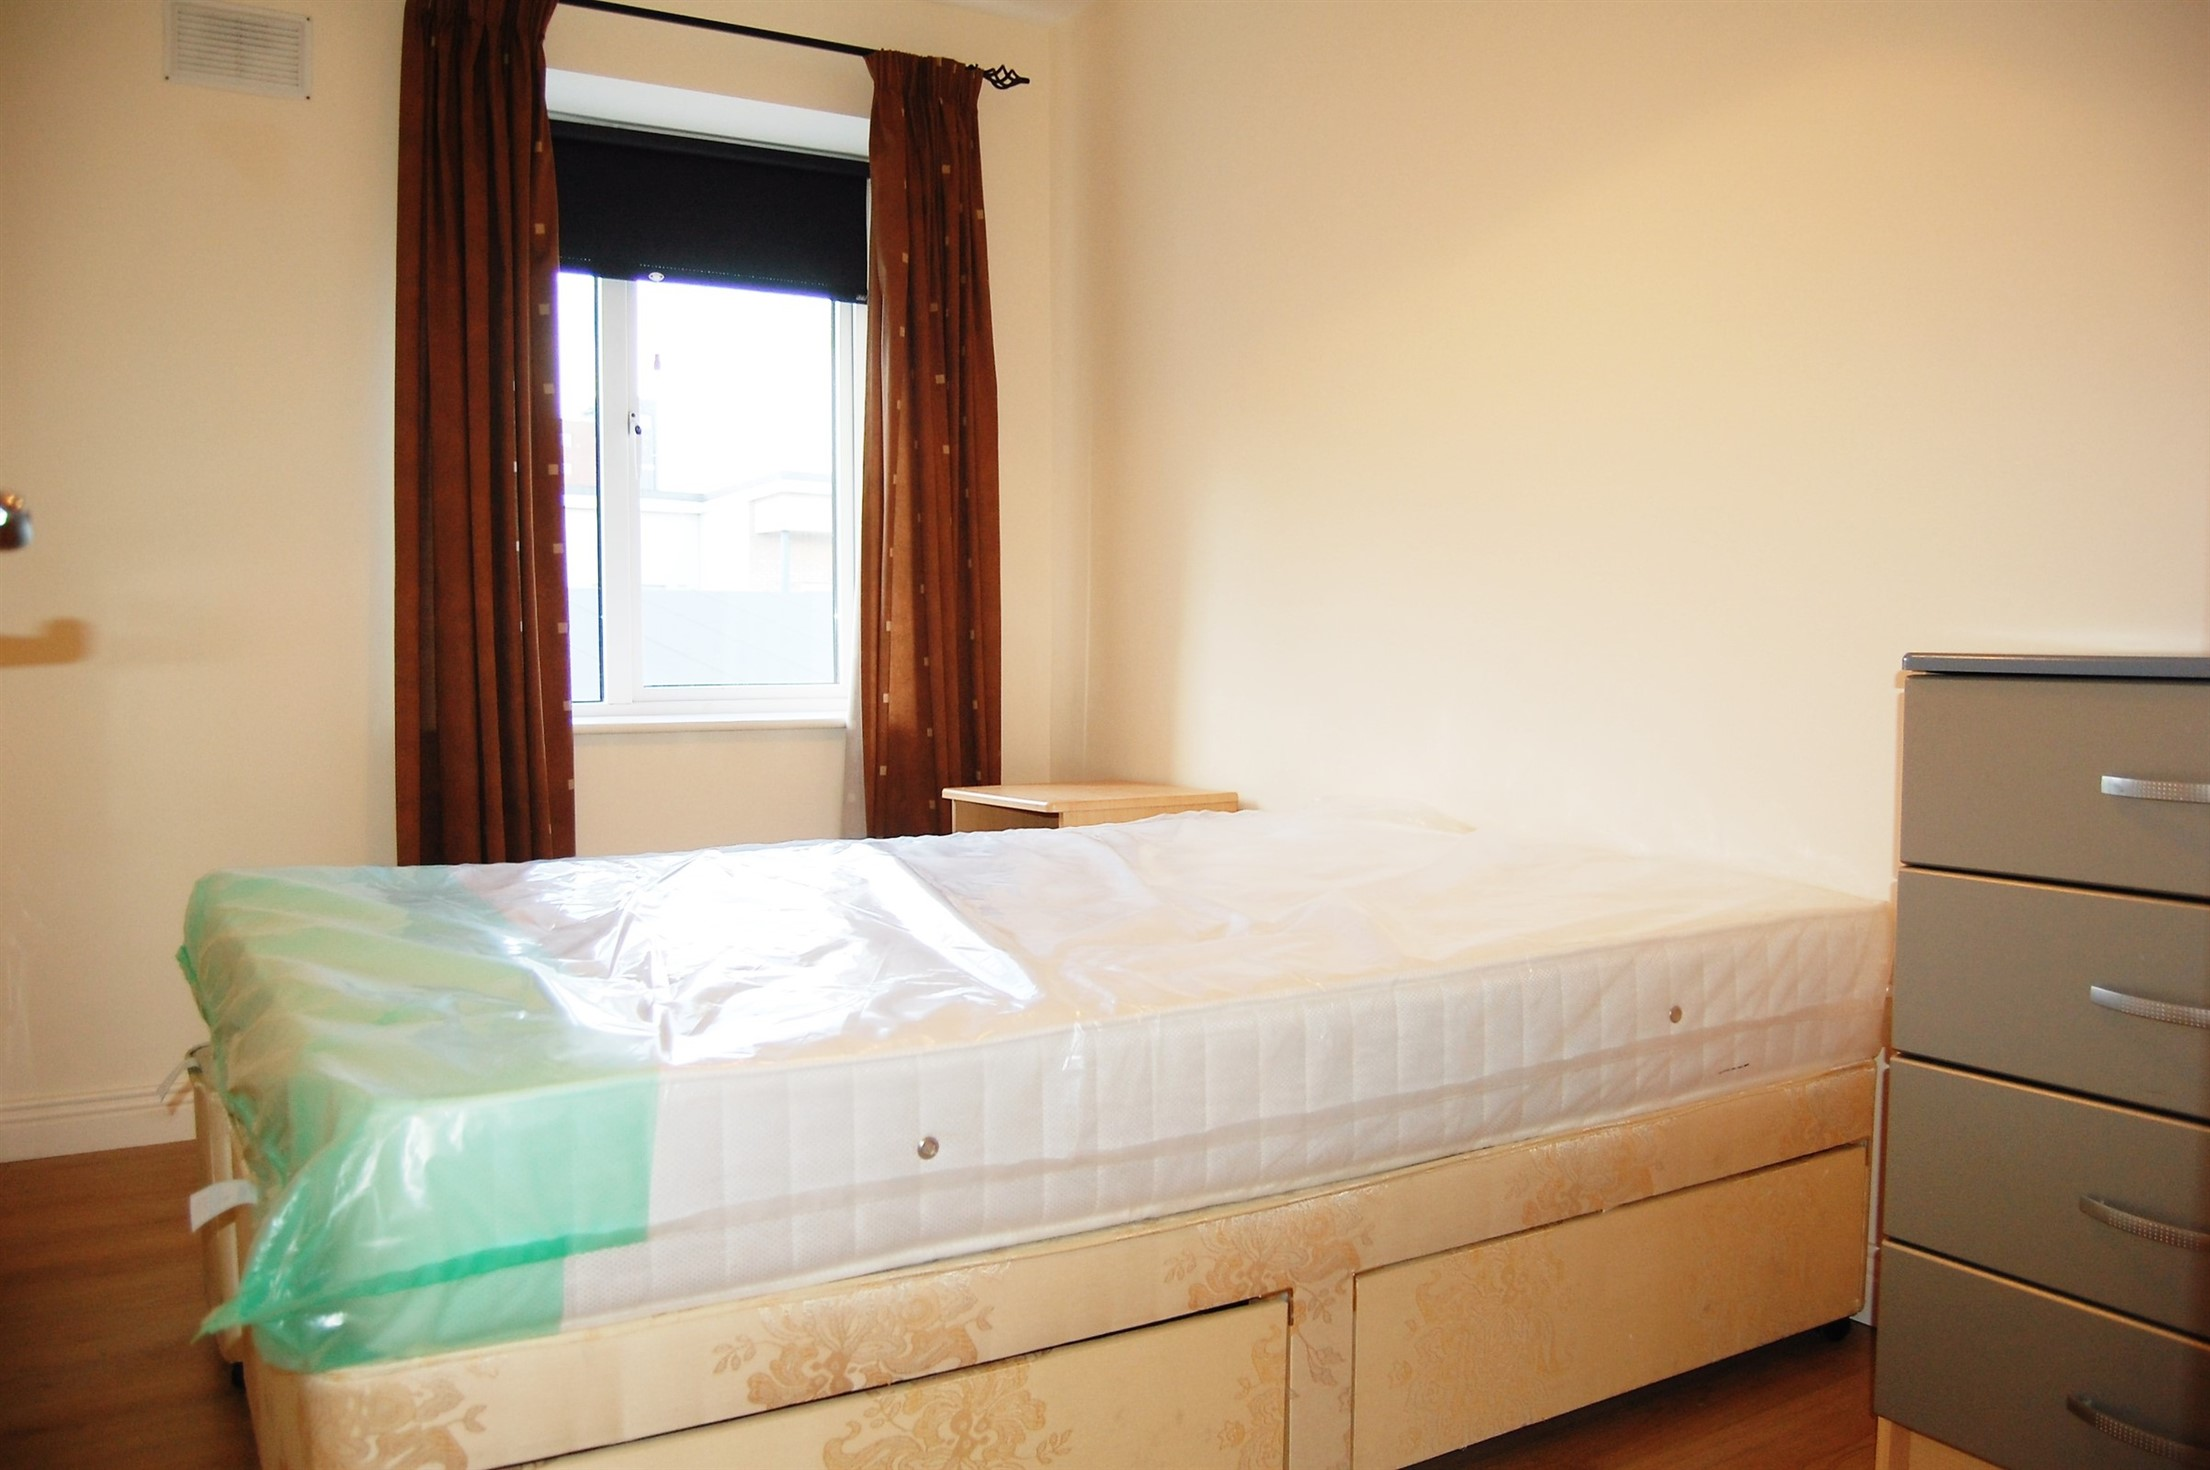 Apartment 11, Block A, The Malthouse, Dublin 8